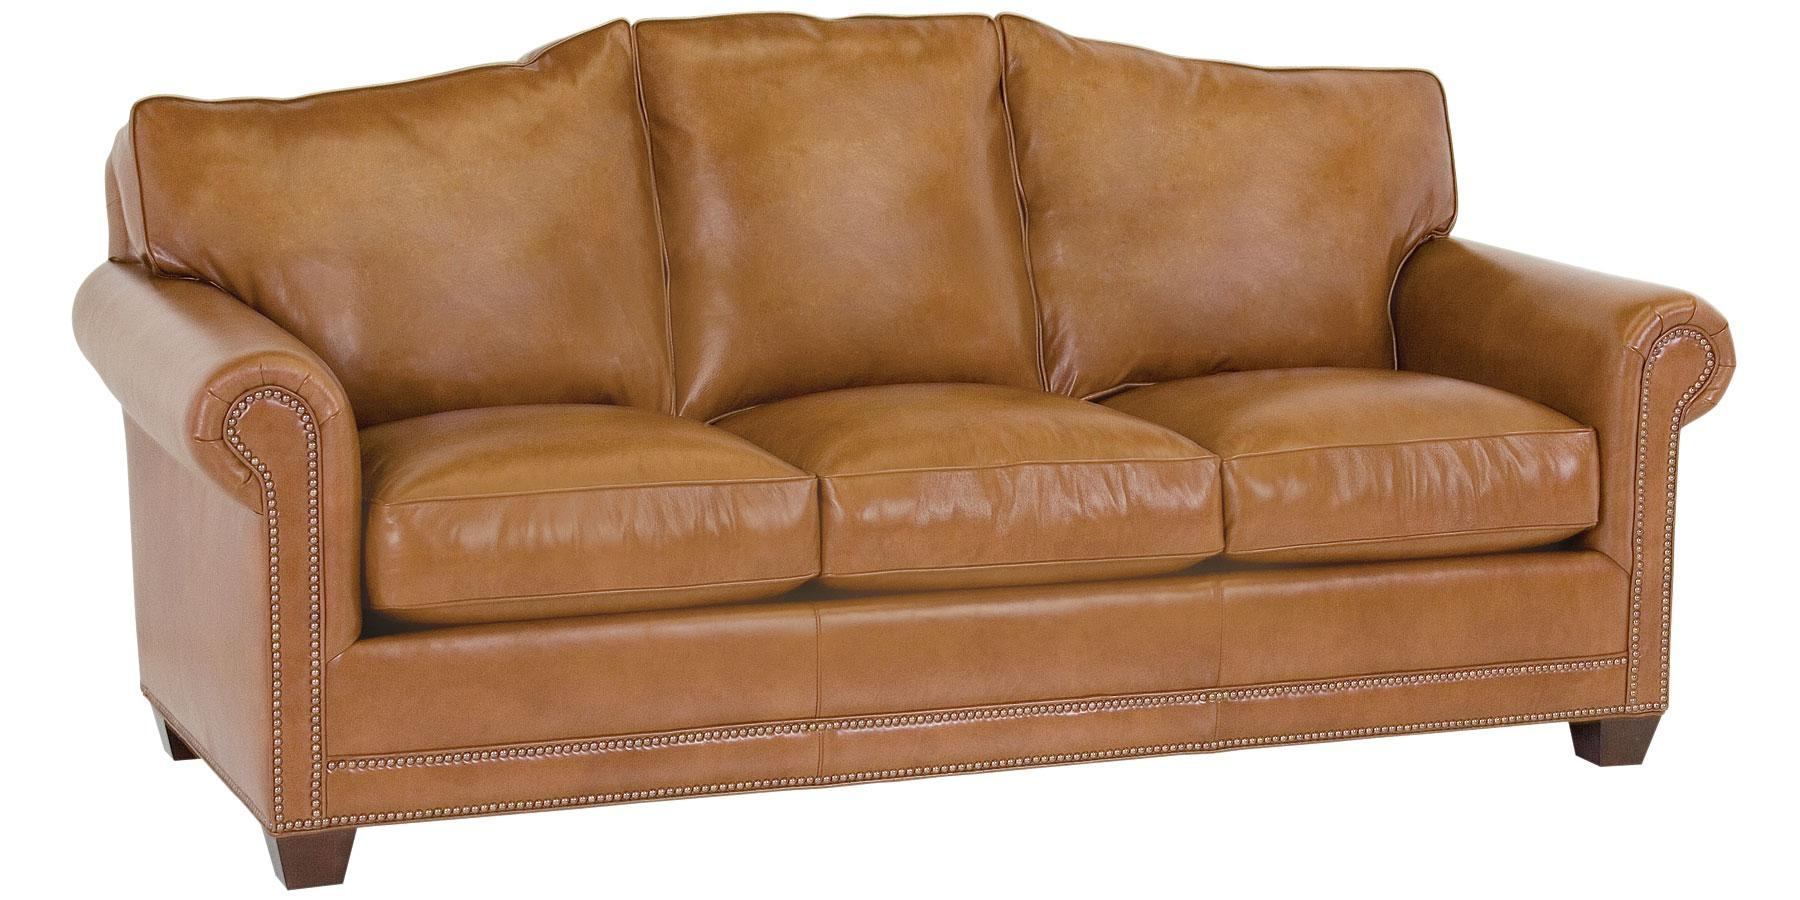 Featured Photo of Camel Color Leather Sofas